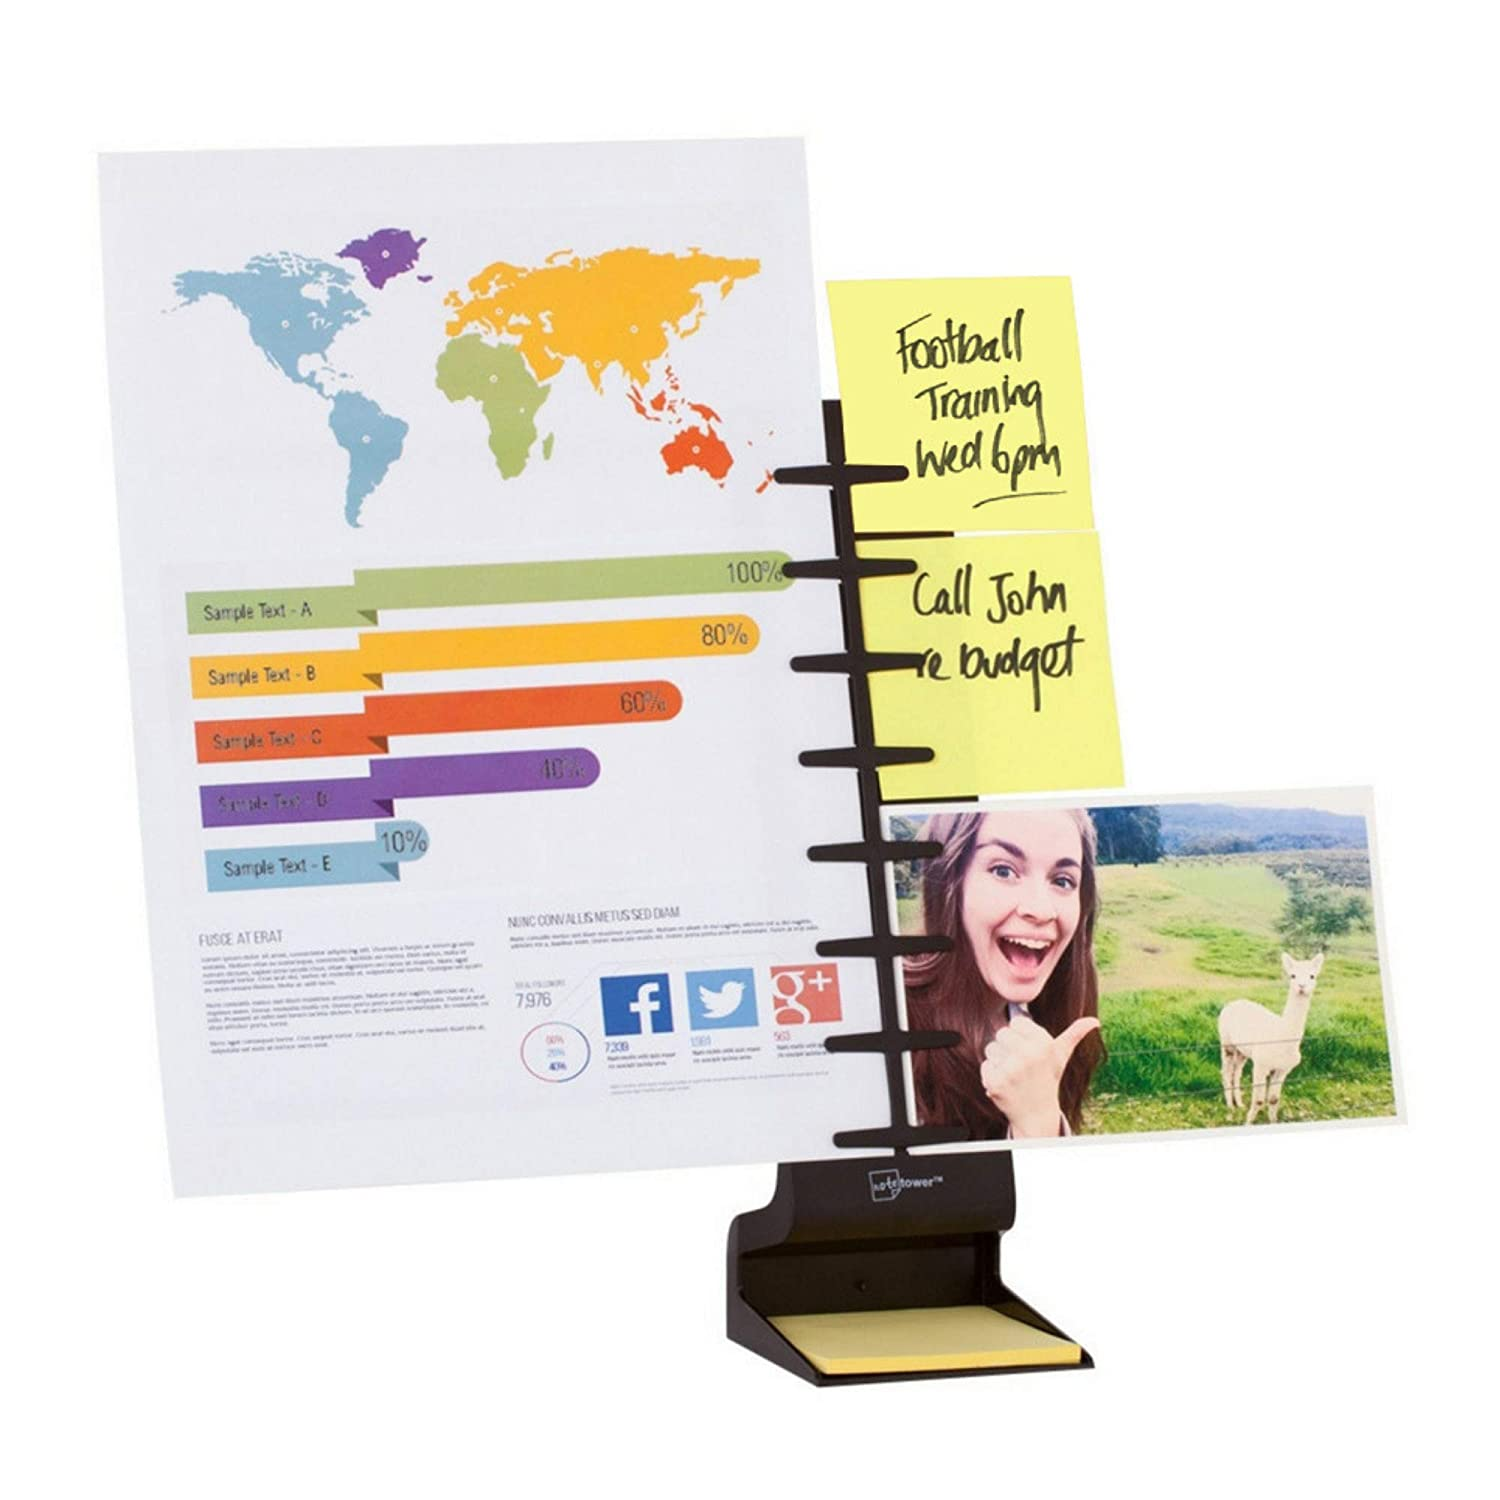 NoteTower Desktop Pro (Black) - 2-Page Document Holder, Typing Stand & Sticky Note Organizer - Displays Documents, Photos, Sticky Notes and Memos - Patented, Compact & Lightweight